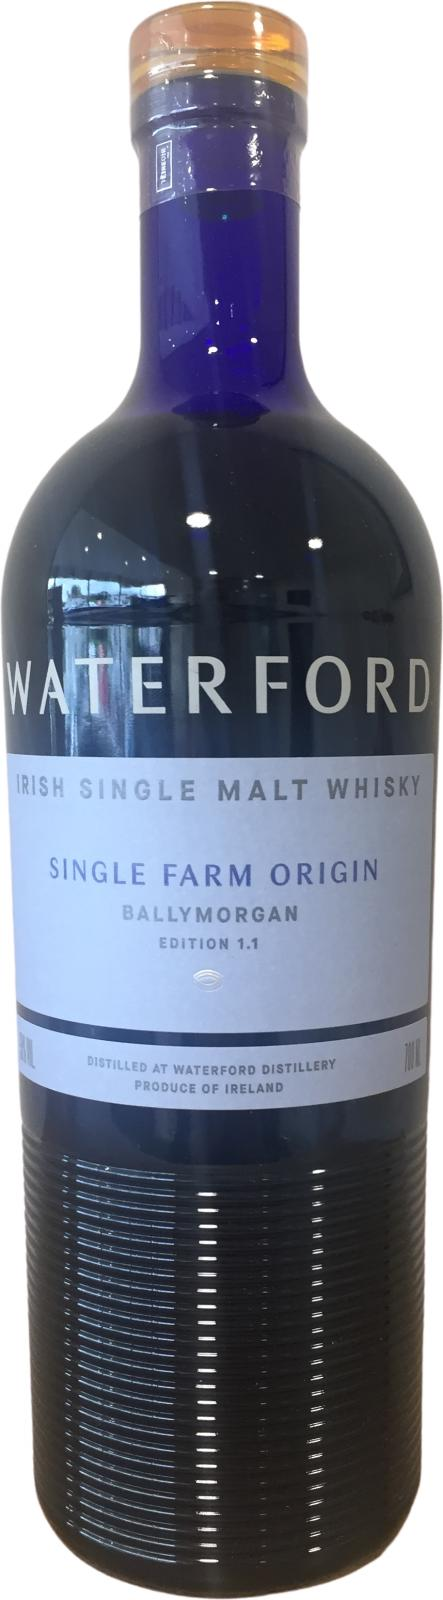 Waterford Ballymorgan: Edition 1.1